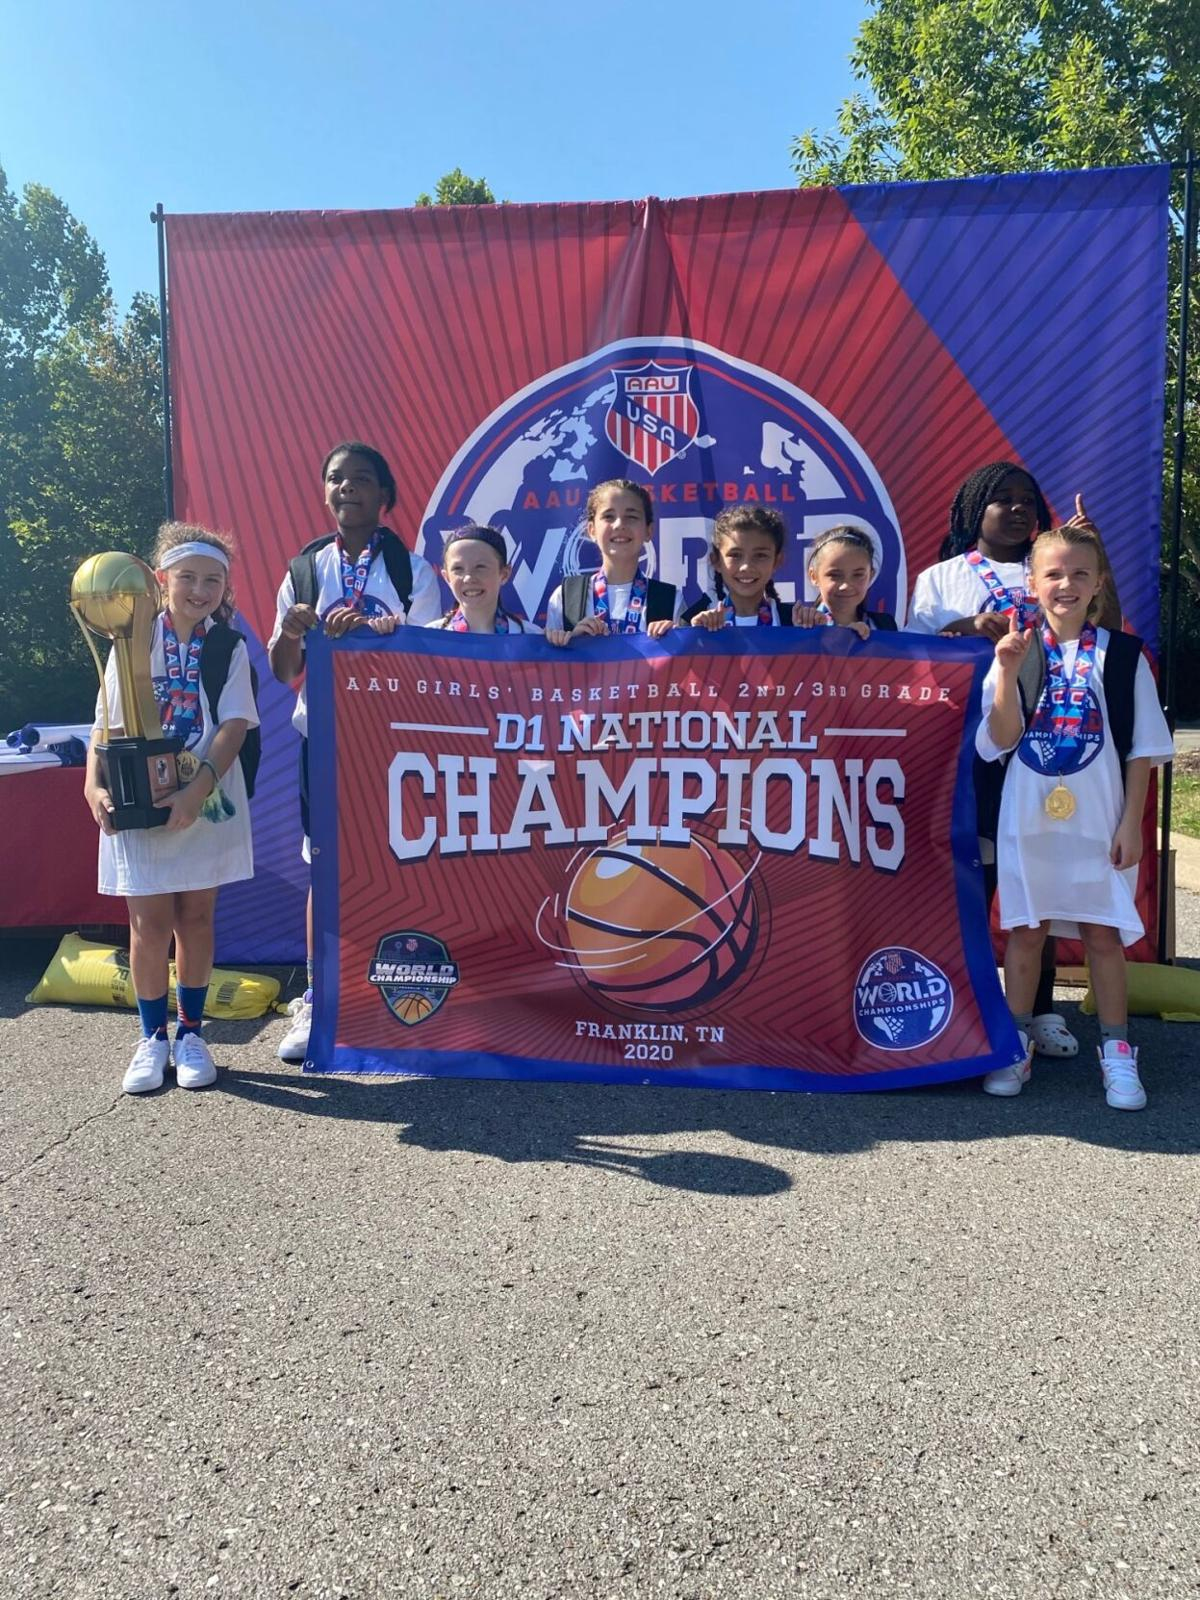 TN Trotters win national title